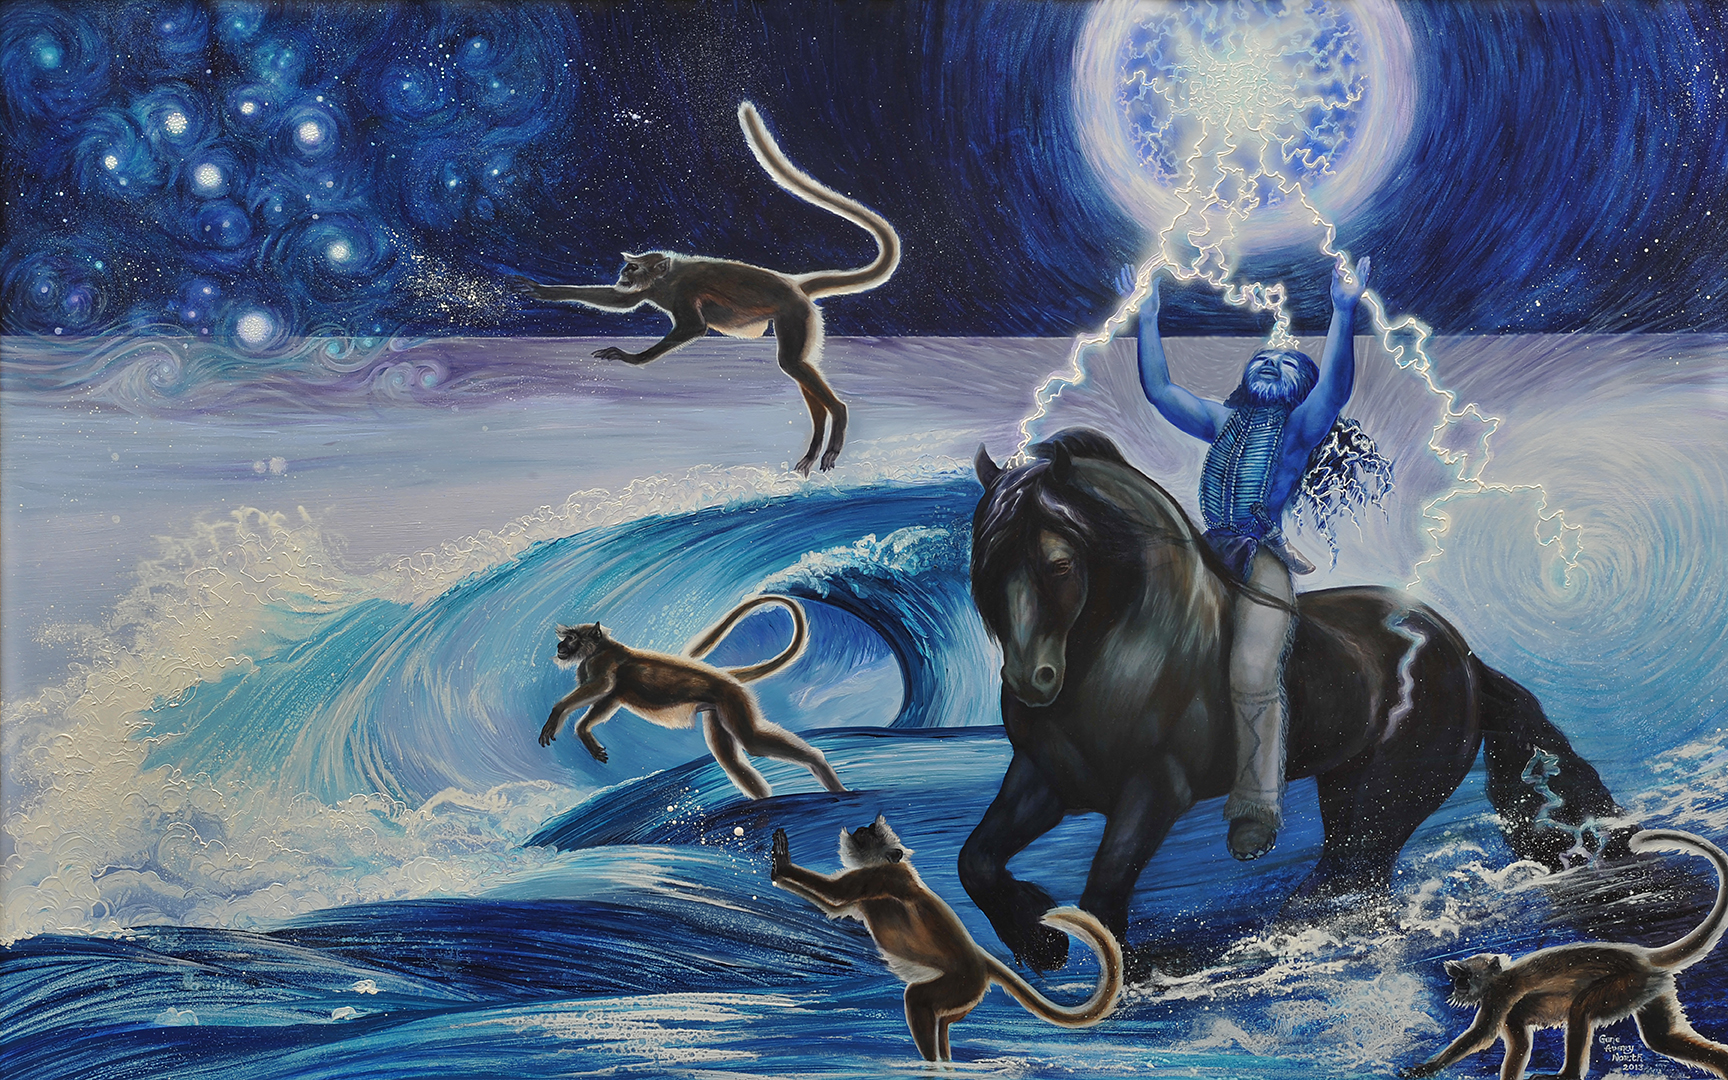 ©2013 Pleiadeans to the Rescue at Fukushima 30x48 oil